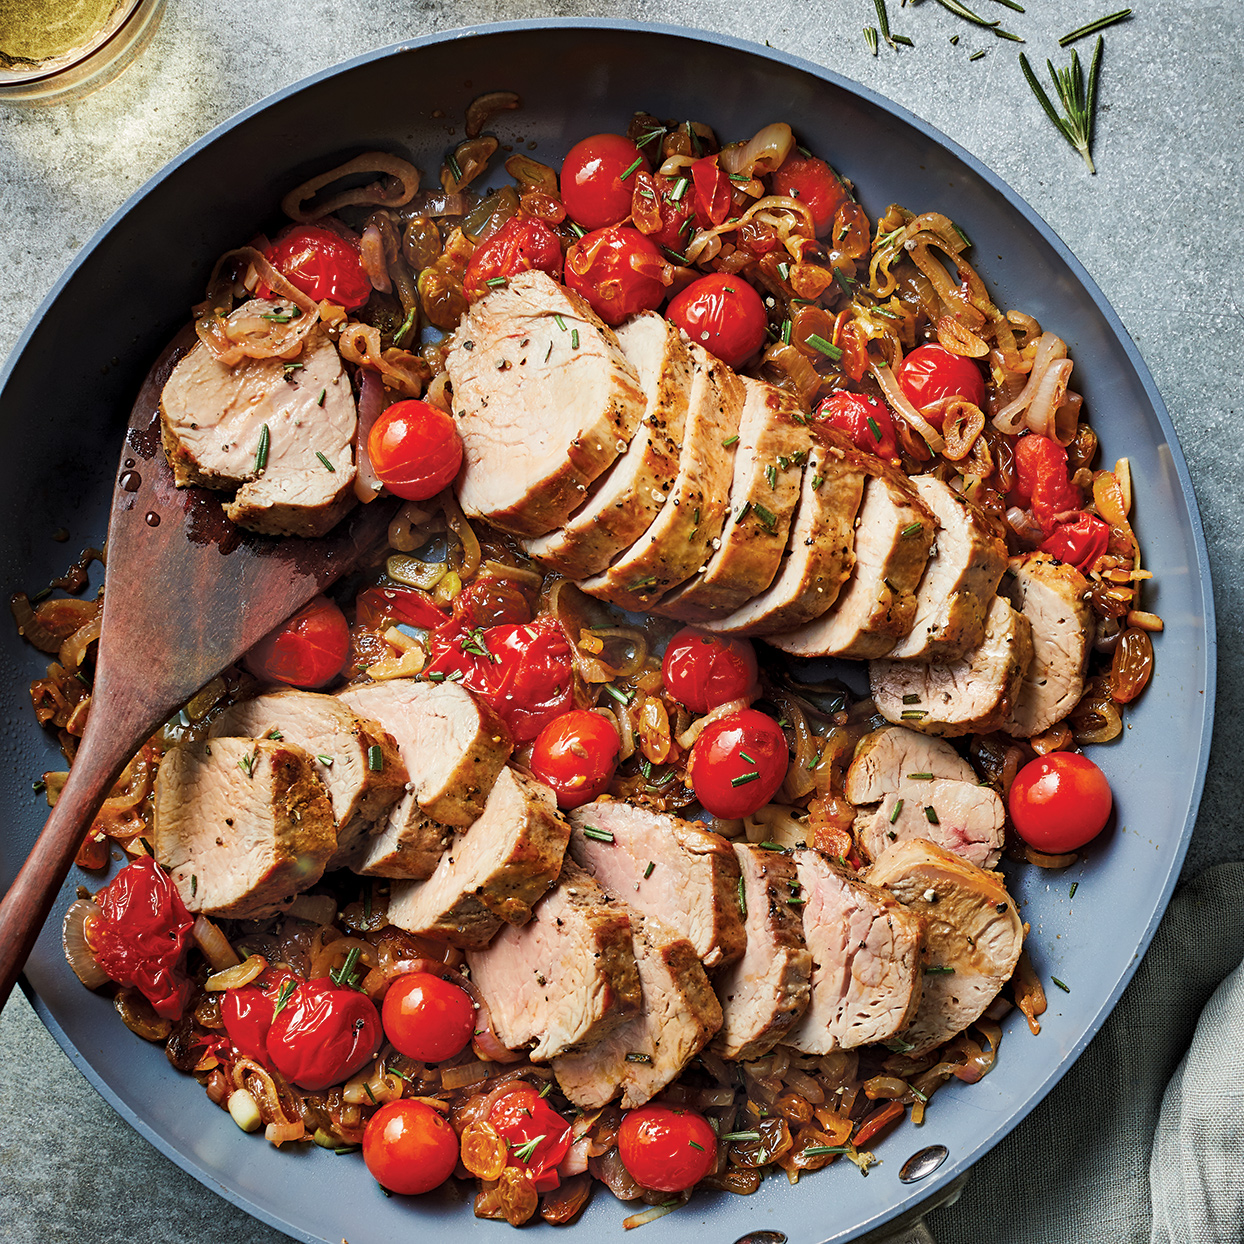 One-Pan Pork Tenderloin with Heirloom Tomato & Shallot Confit